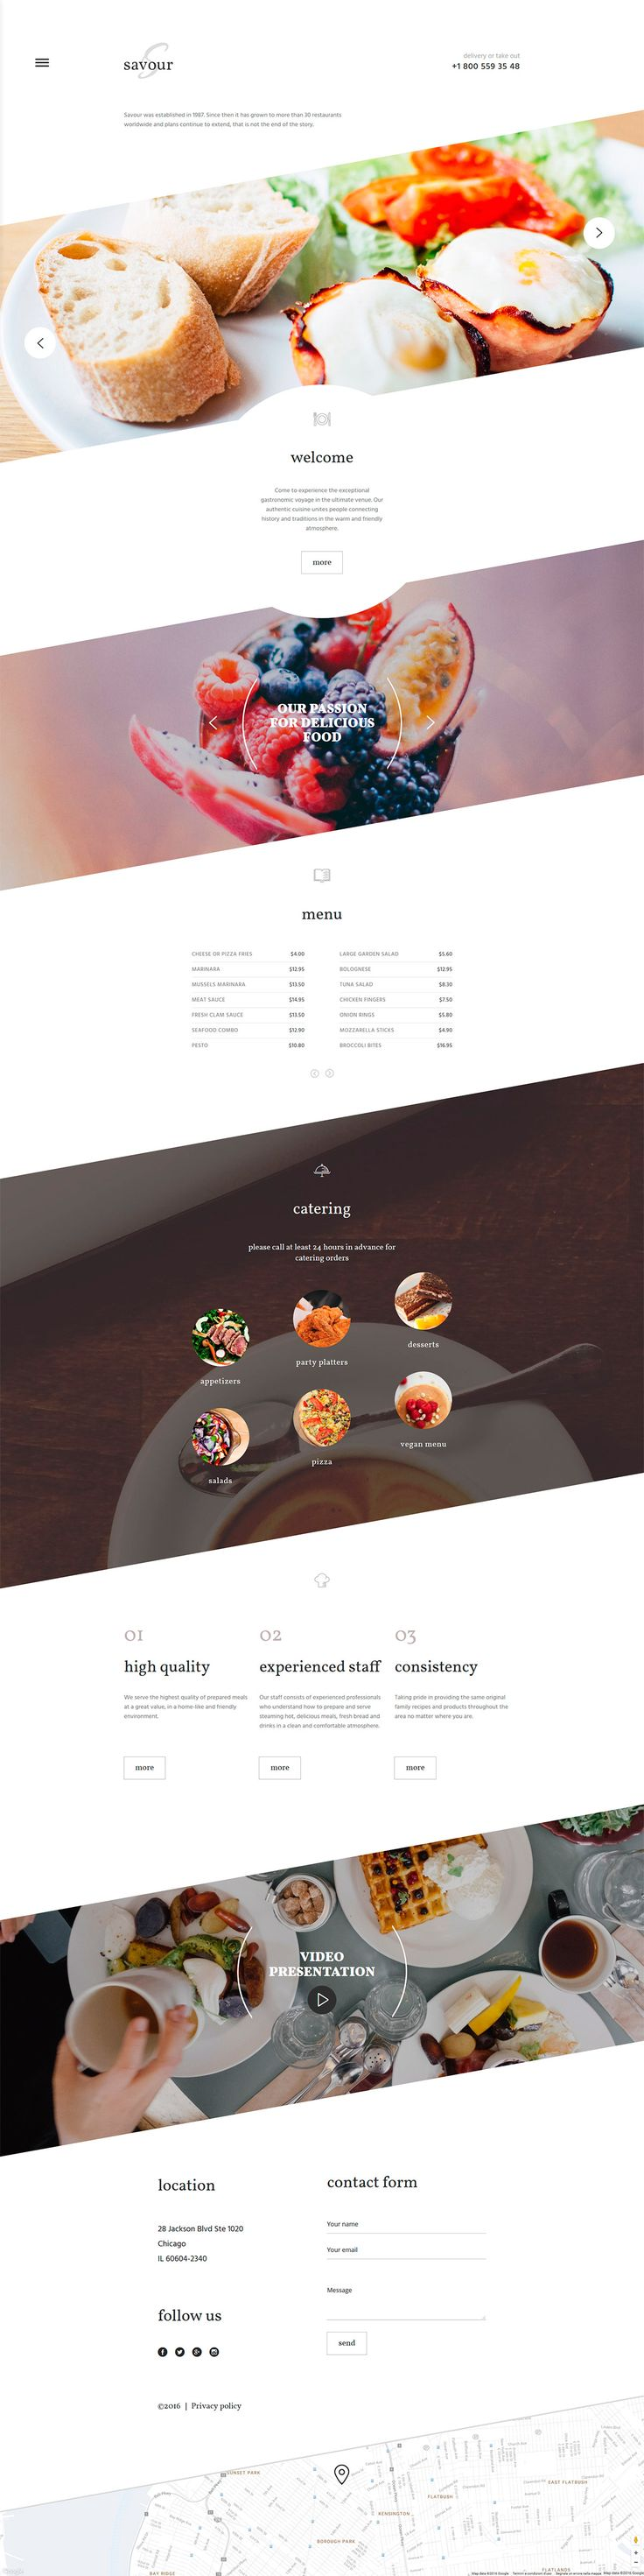 Luxury Restaurant Website Theme #website #web #themes #business #responsive #restaurant #food #websitethemes